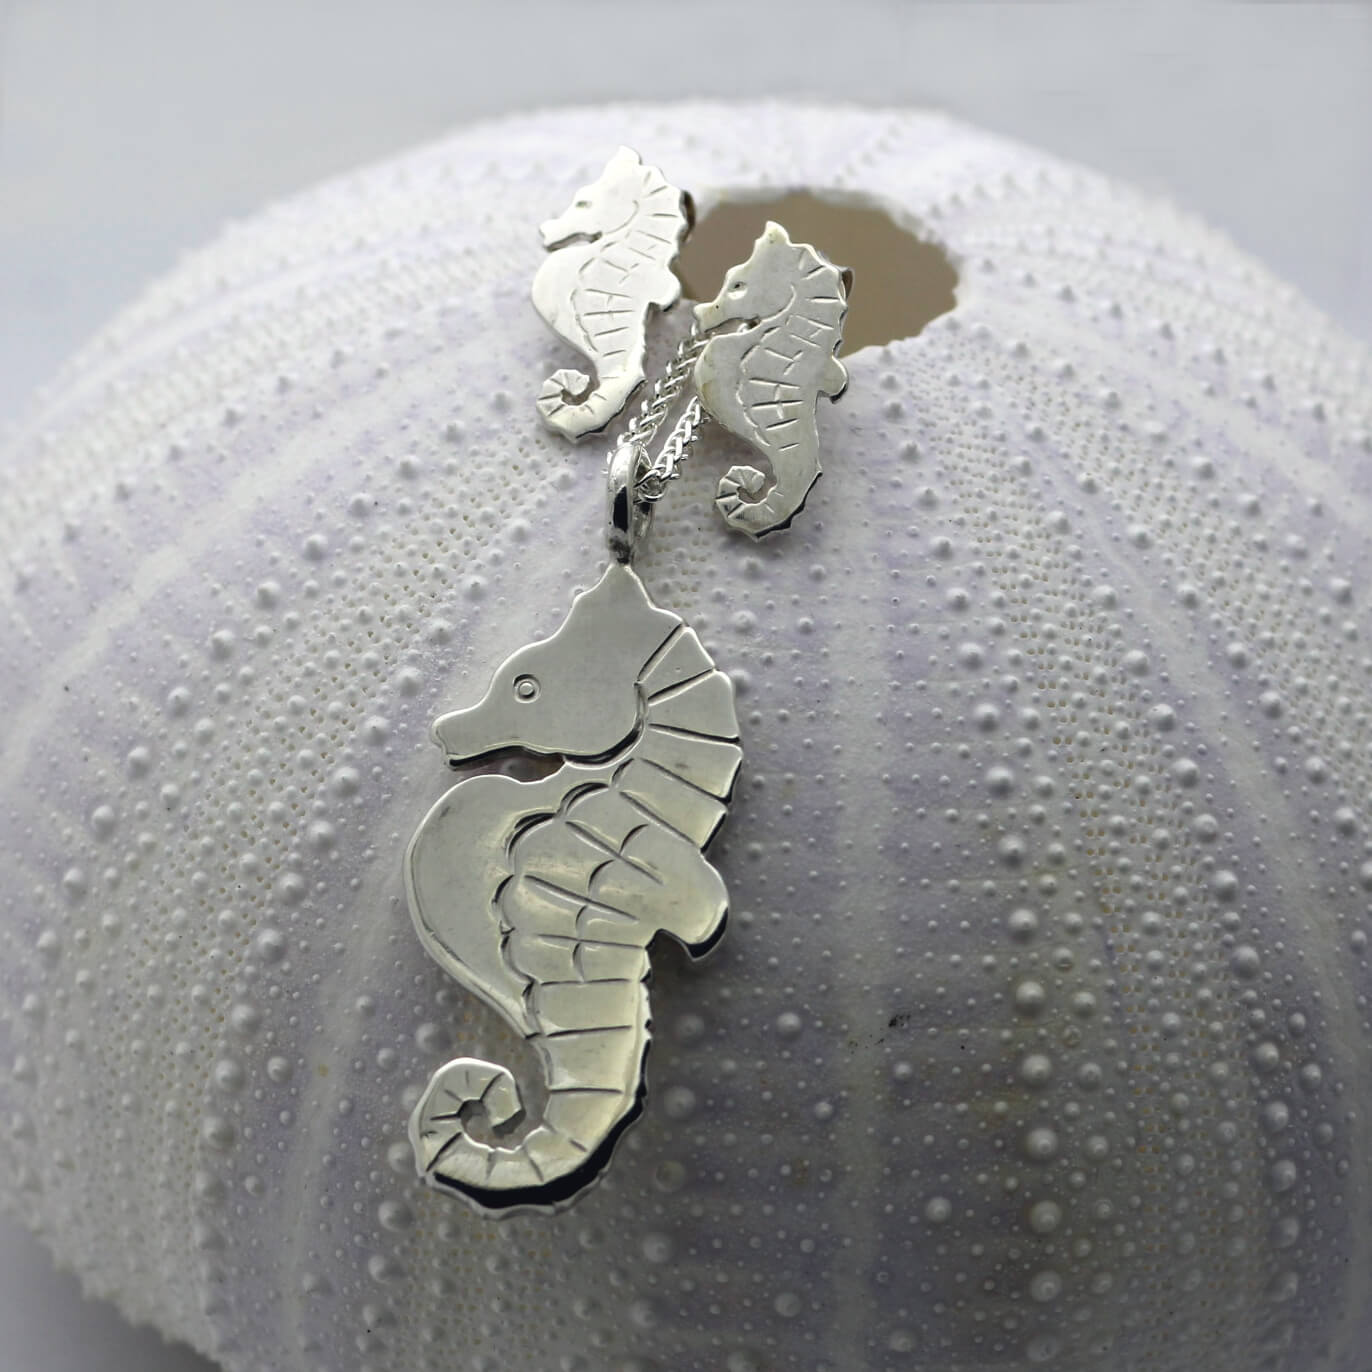 Handmade unique Sterling Silver seahorse charm necklace and matching stud earrings